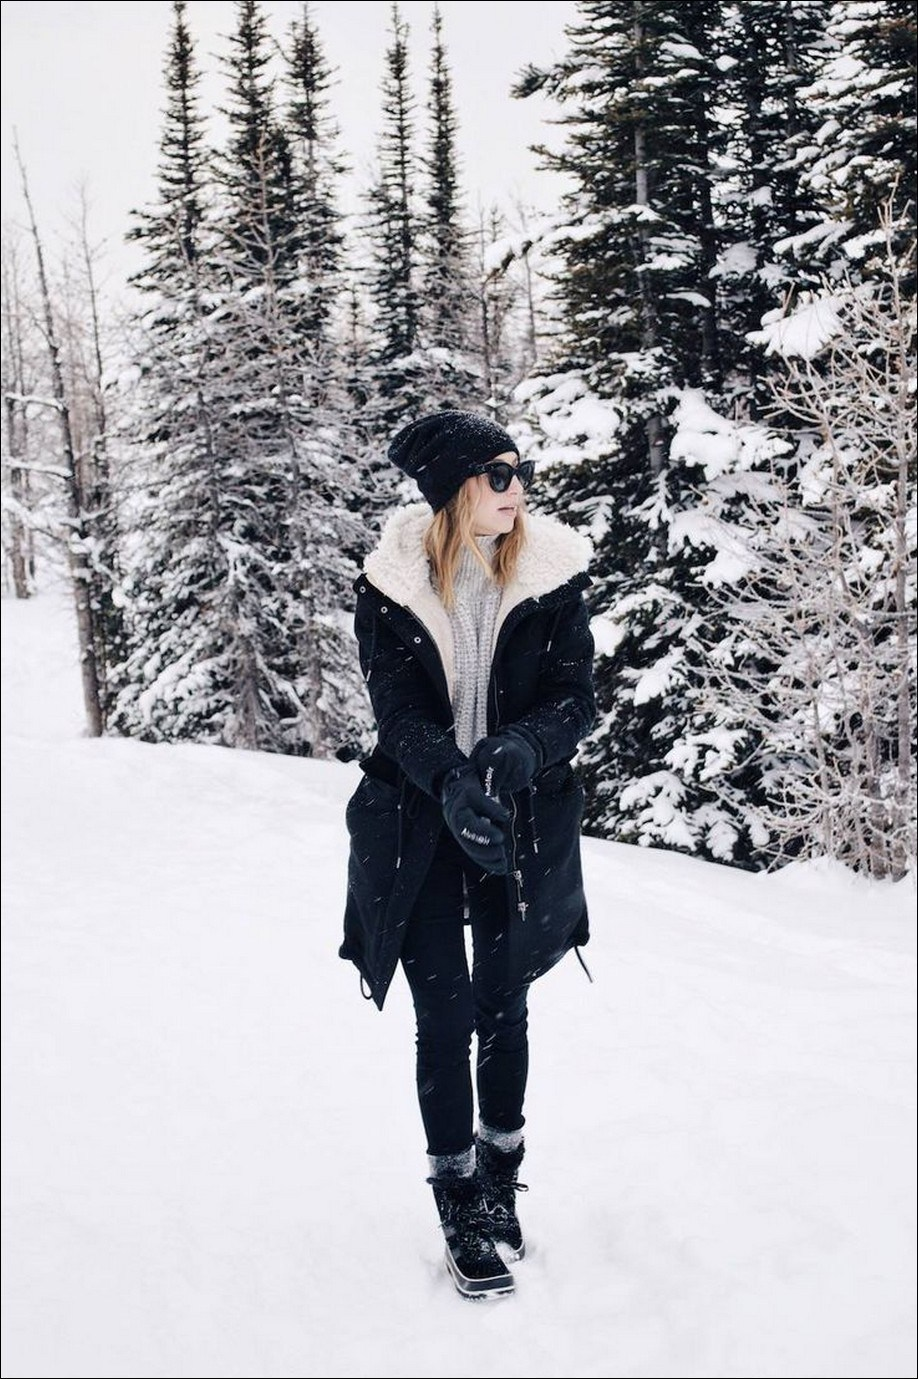 55+ lovely winter dress ideas for teens ideas 39